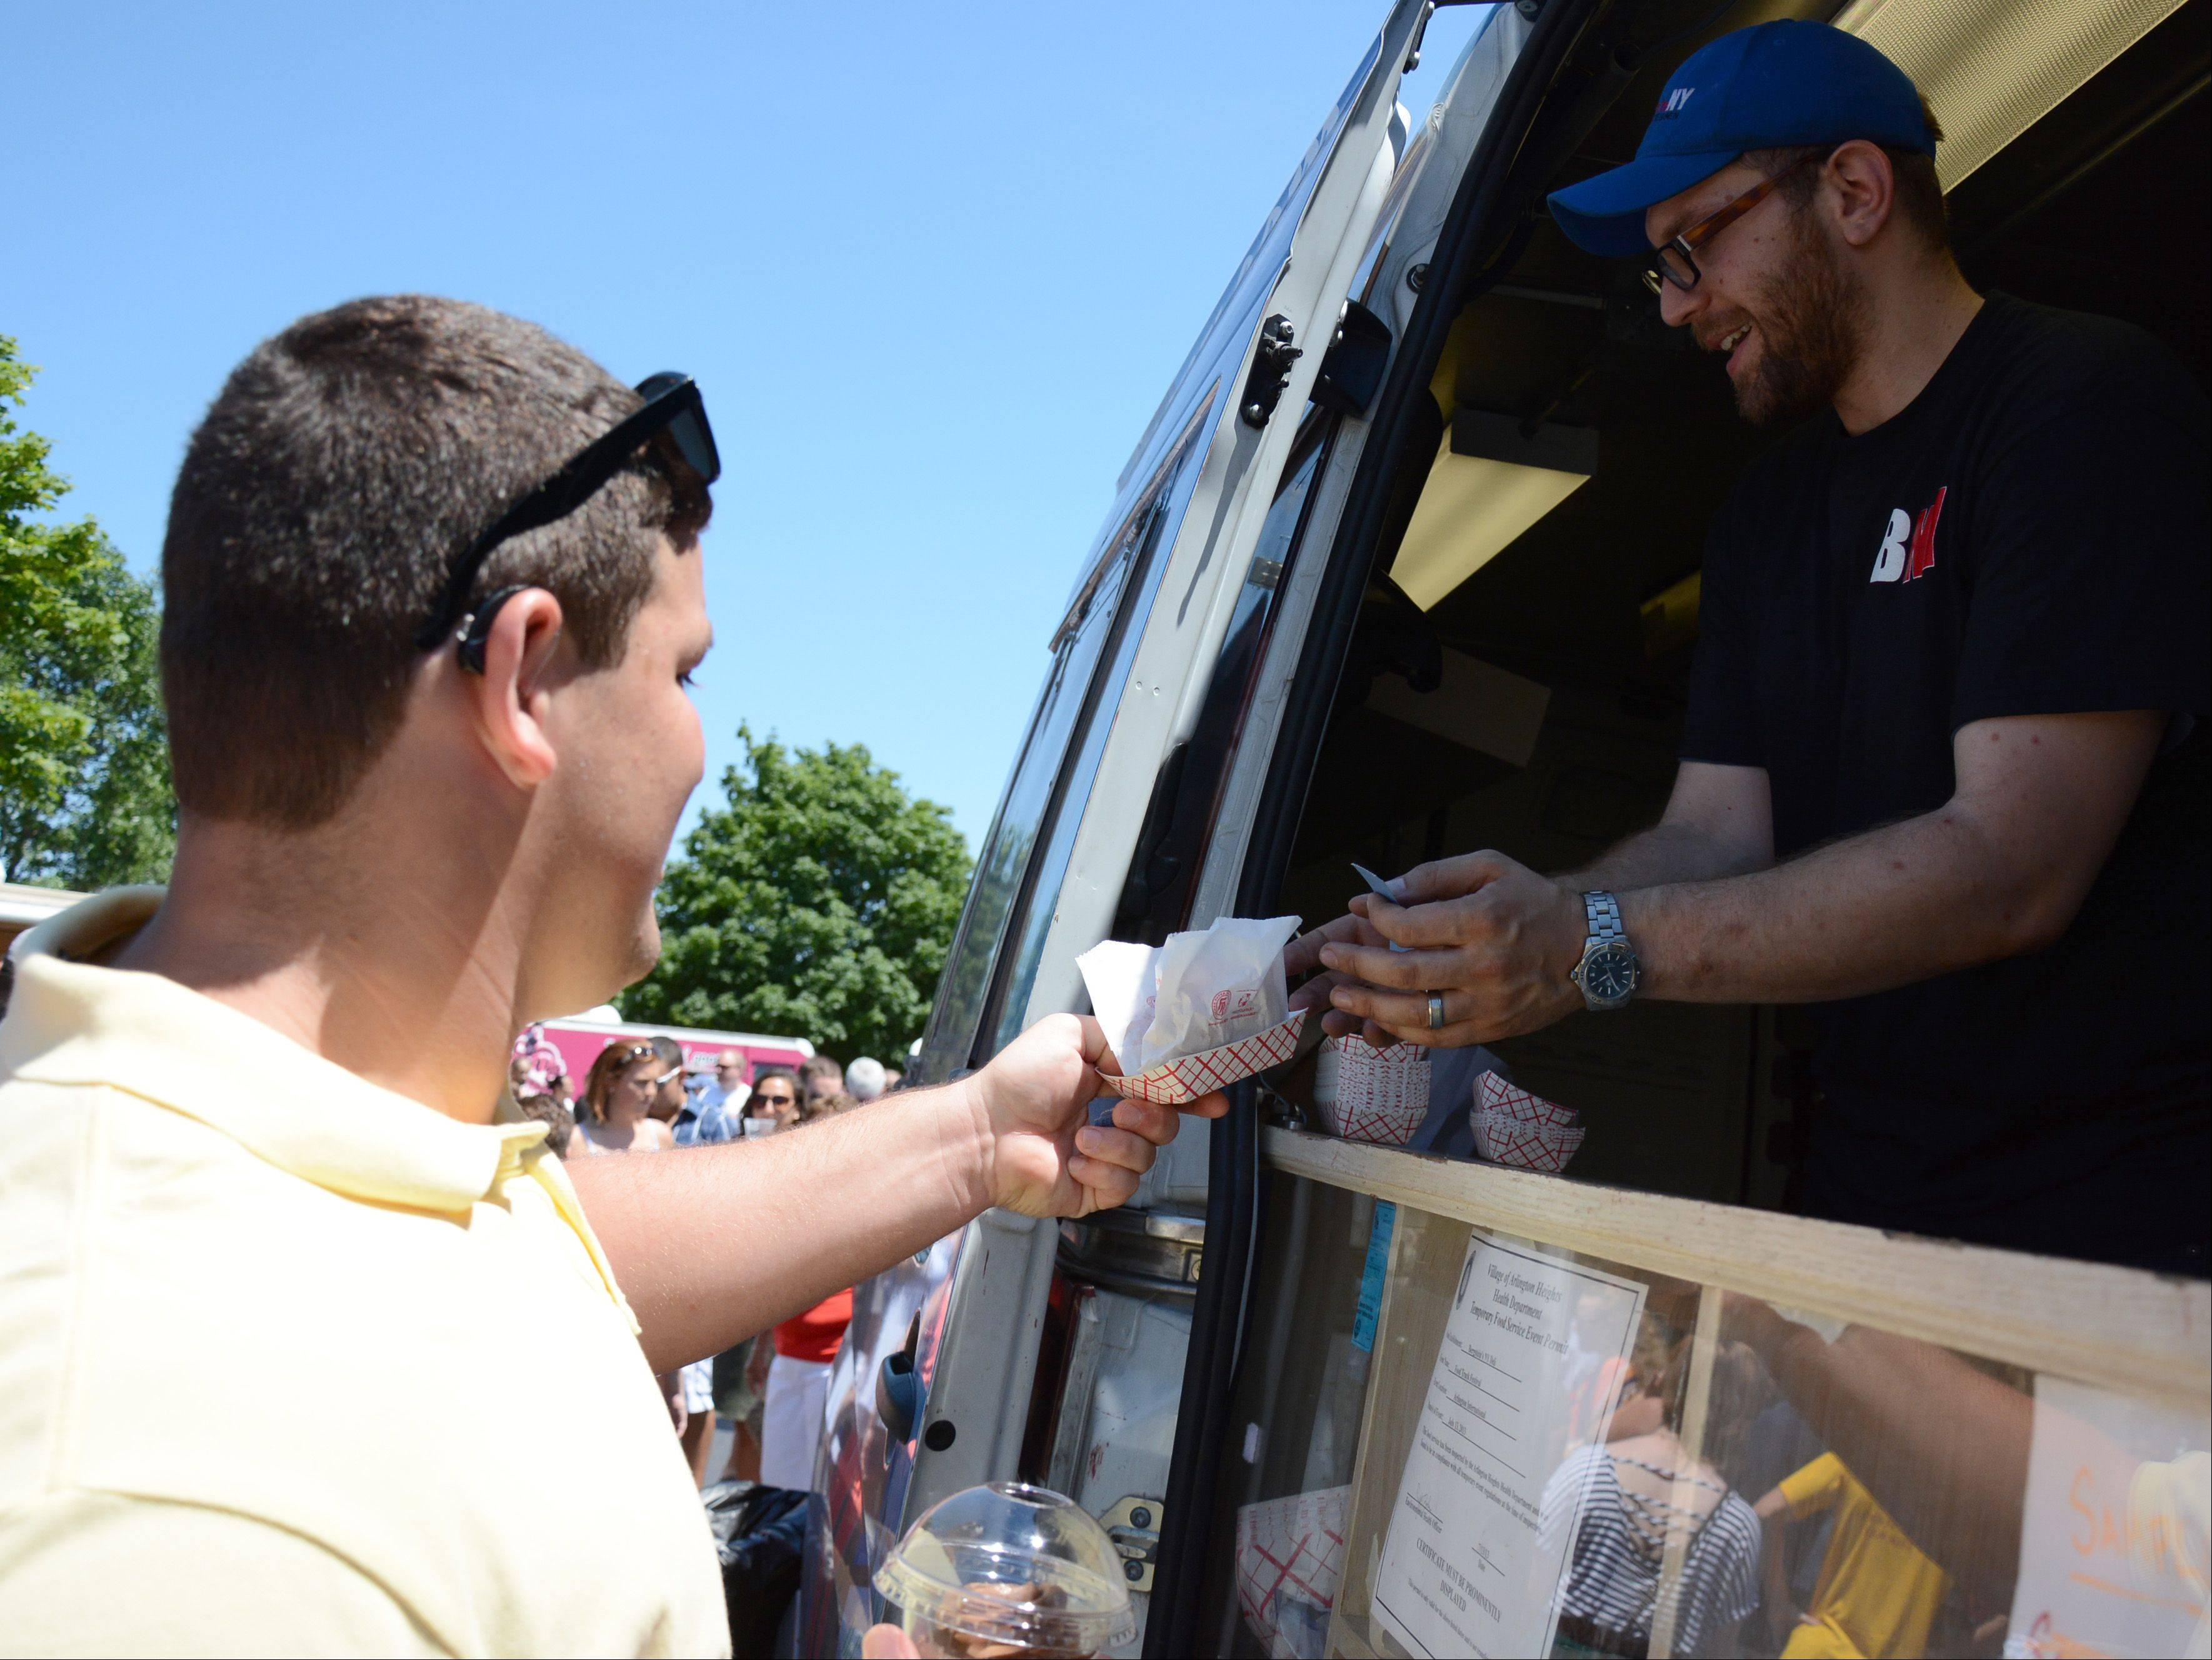 Nick Amren, left, of Crystal Lake, gets a potato pancake from Bill Davis of Bergstein's NY Delicatessen during the Food Truck Festival at Arlington Park on Saturday.